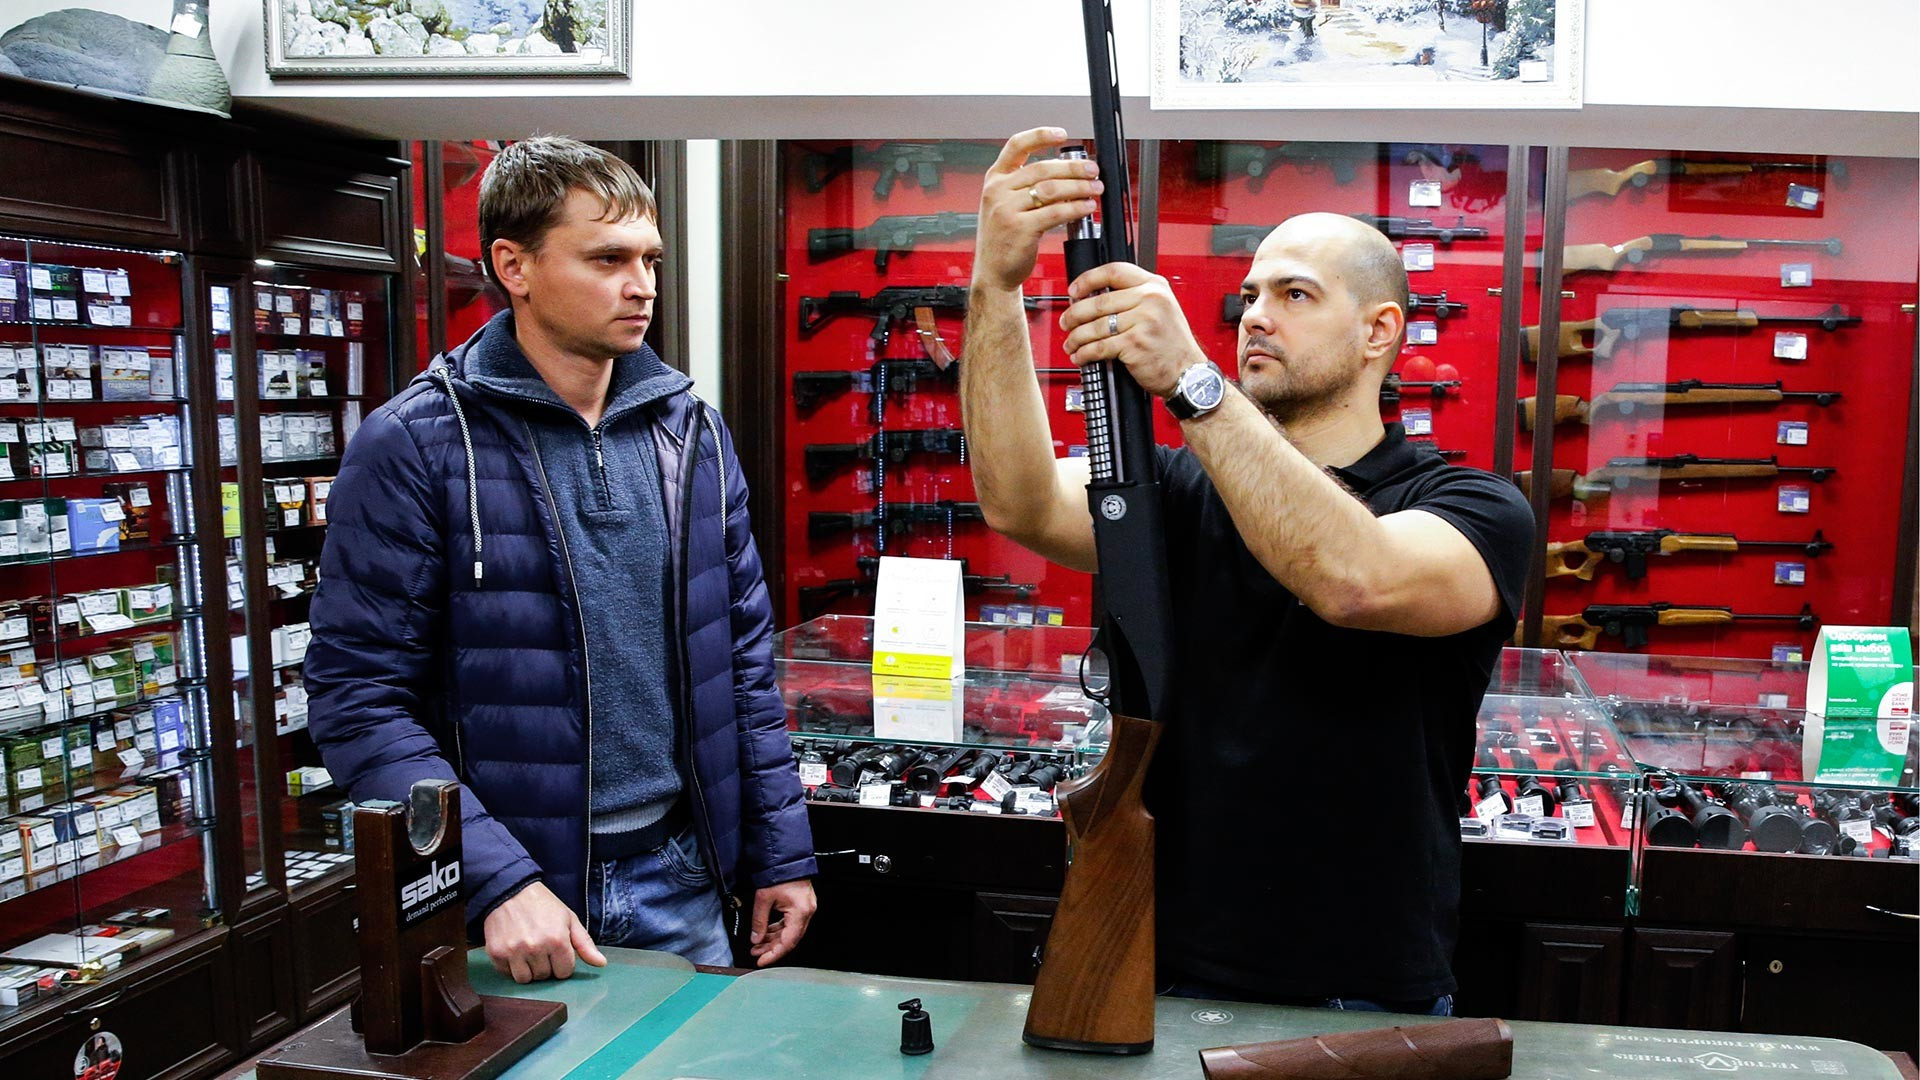 Customer's viewing a weapon in a store in Chelyabinsk.